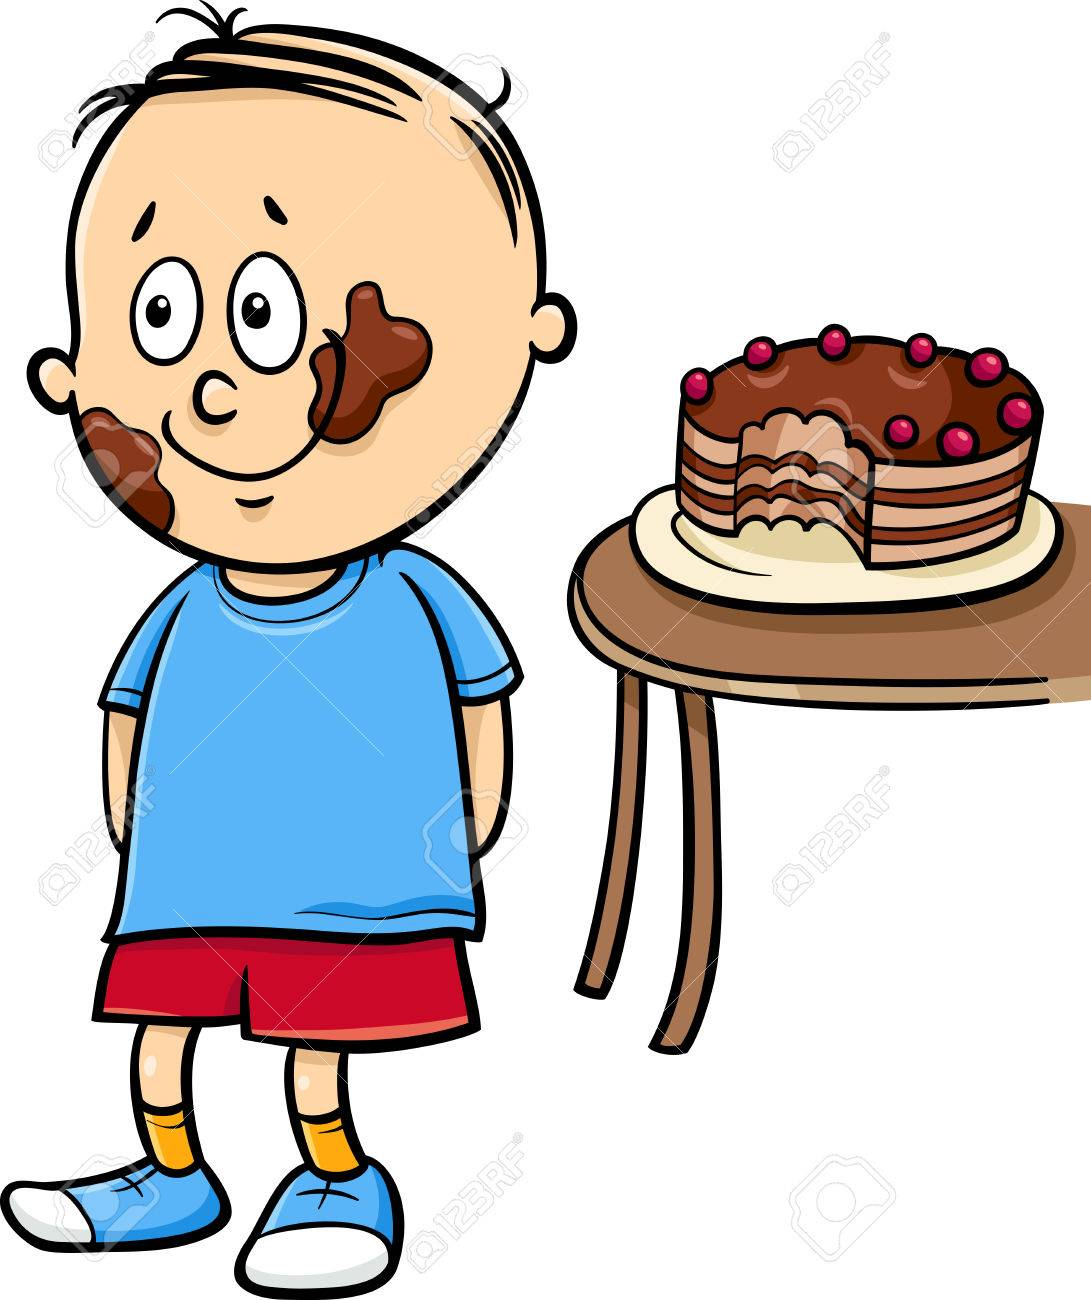 Clipart Eating Cake & Free Clip Art Images #29084.